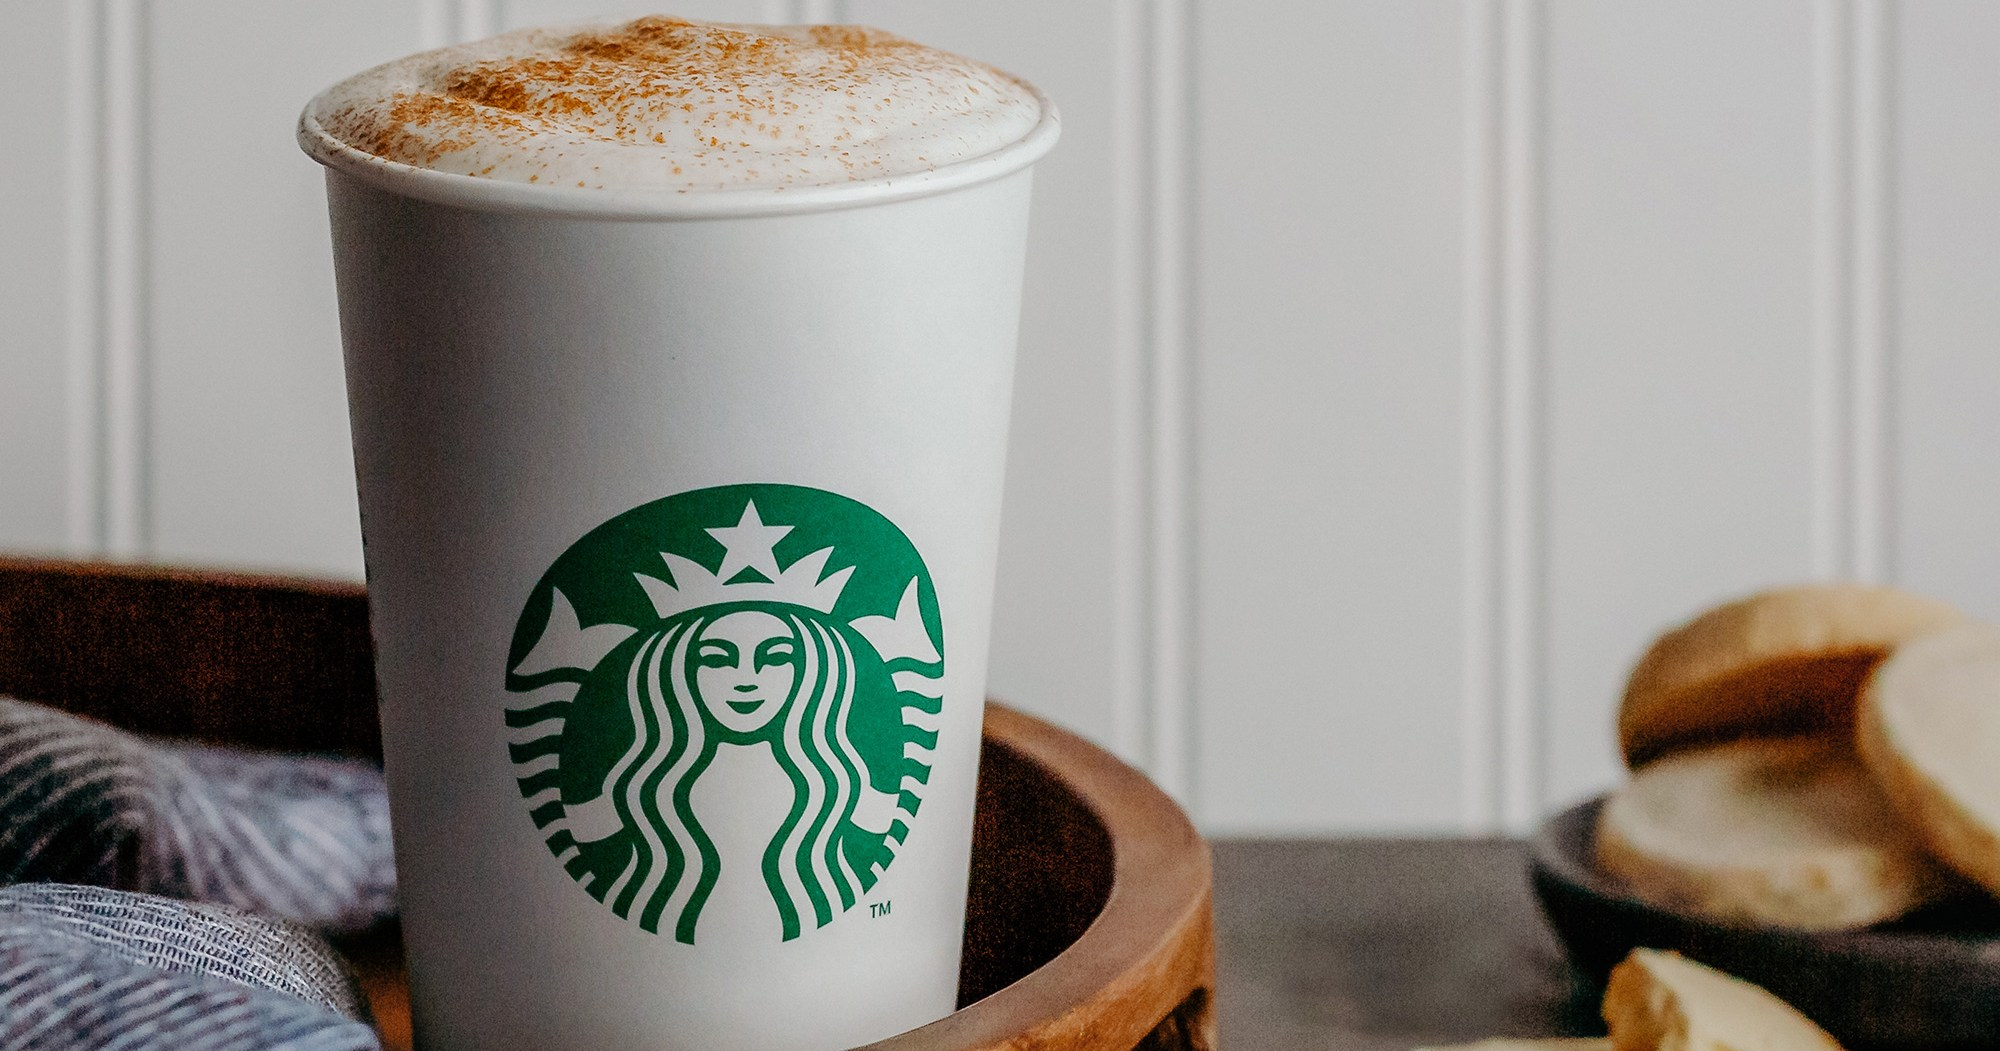 Starbucks' Newest Winter Latte Is Giving the Pumpkin Spice Latte a Run for Its Money